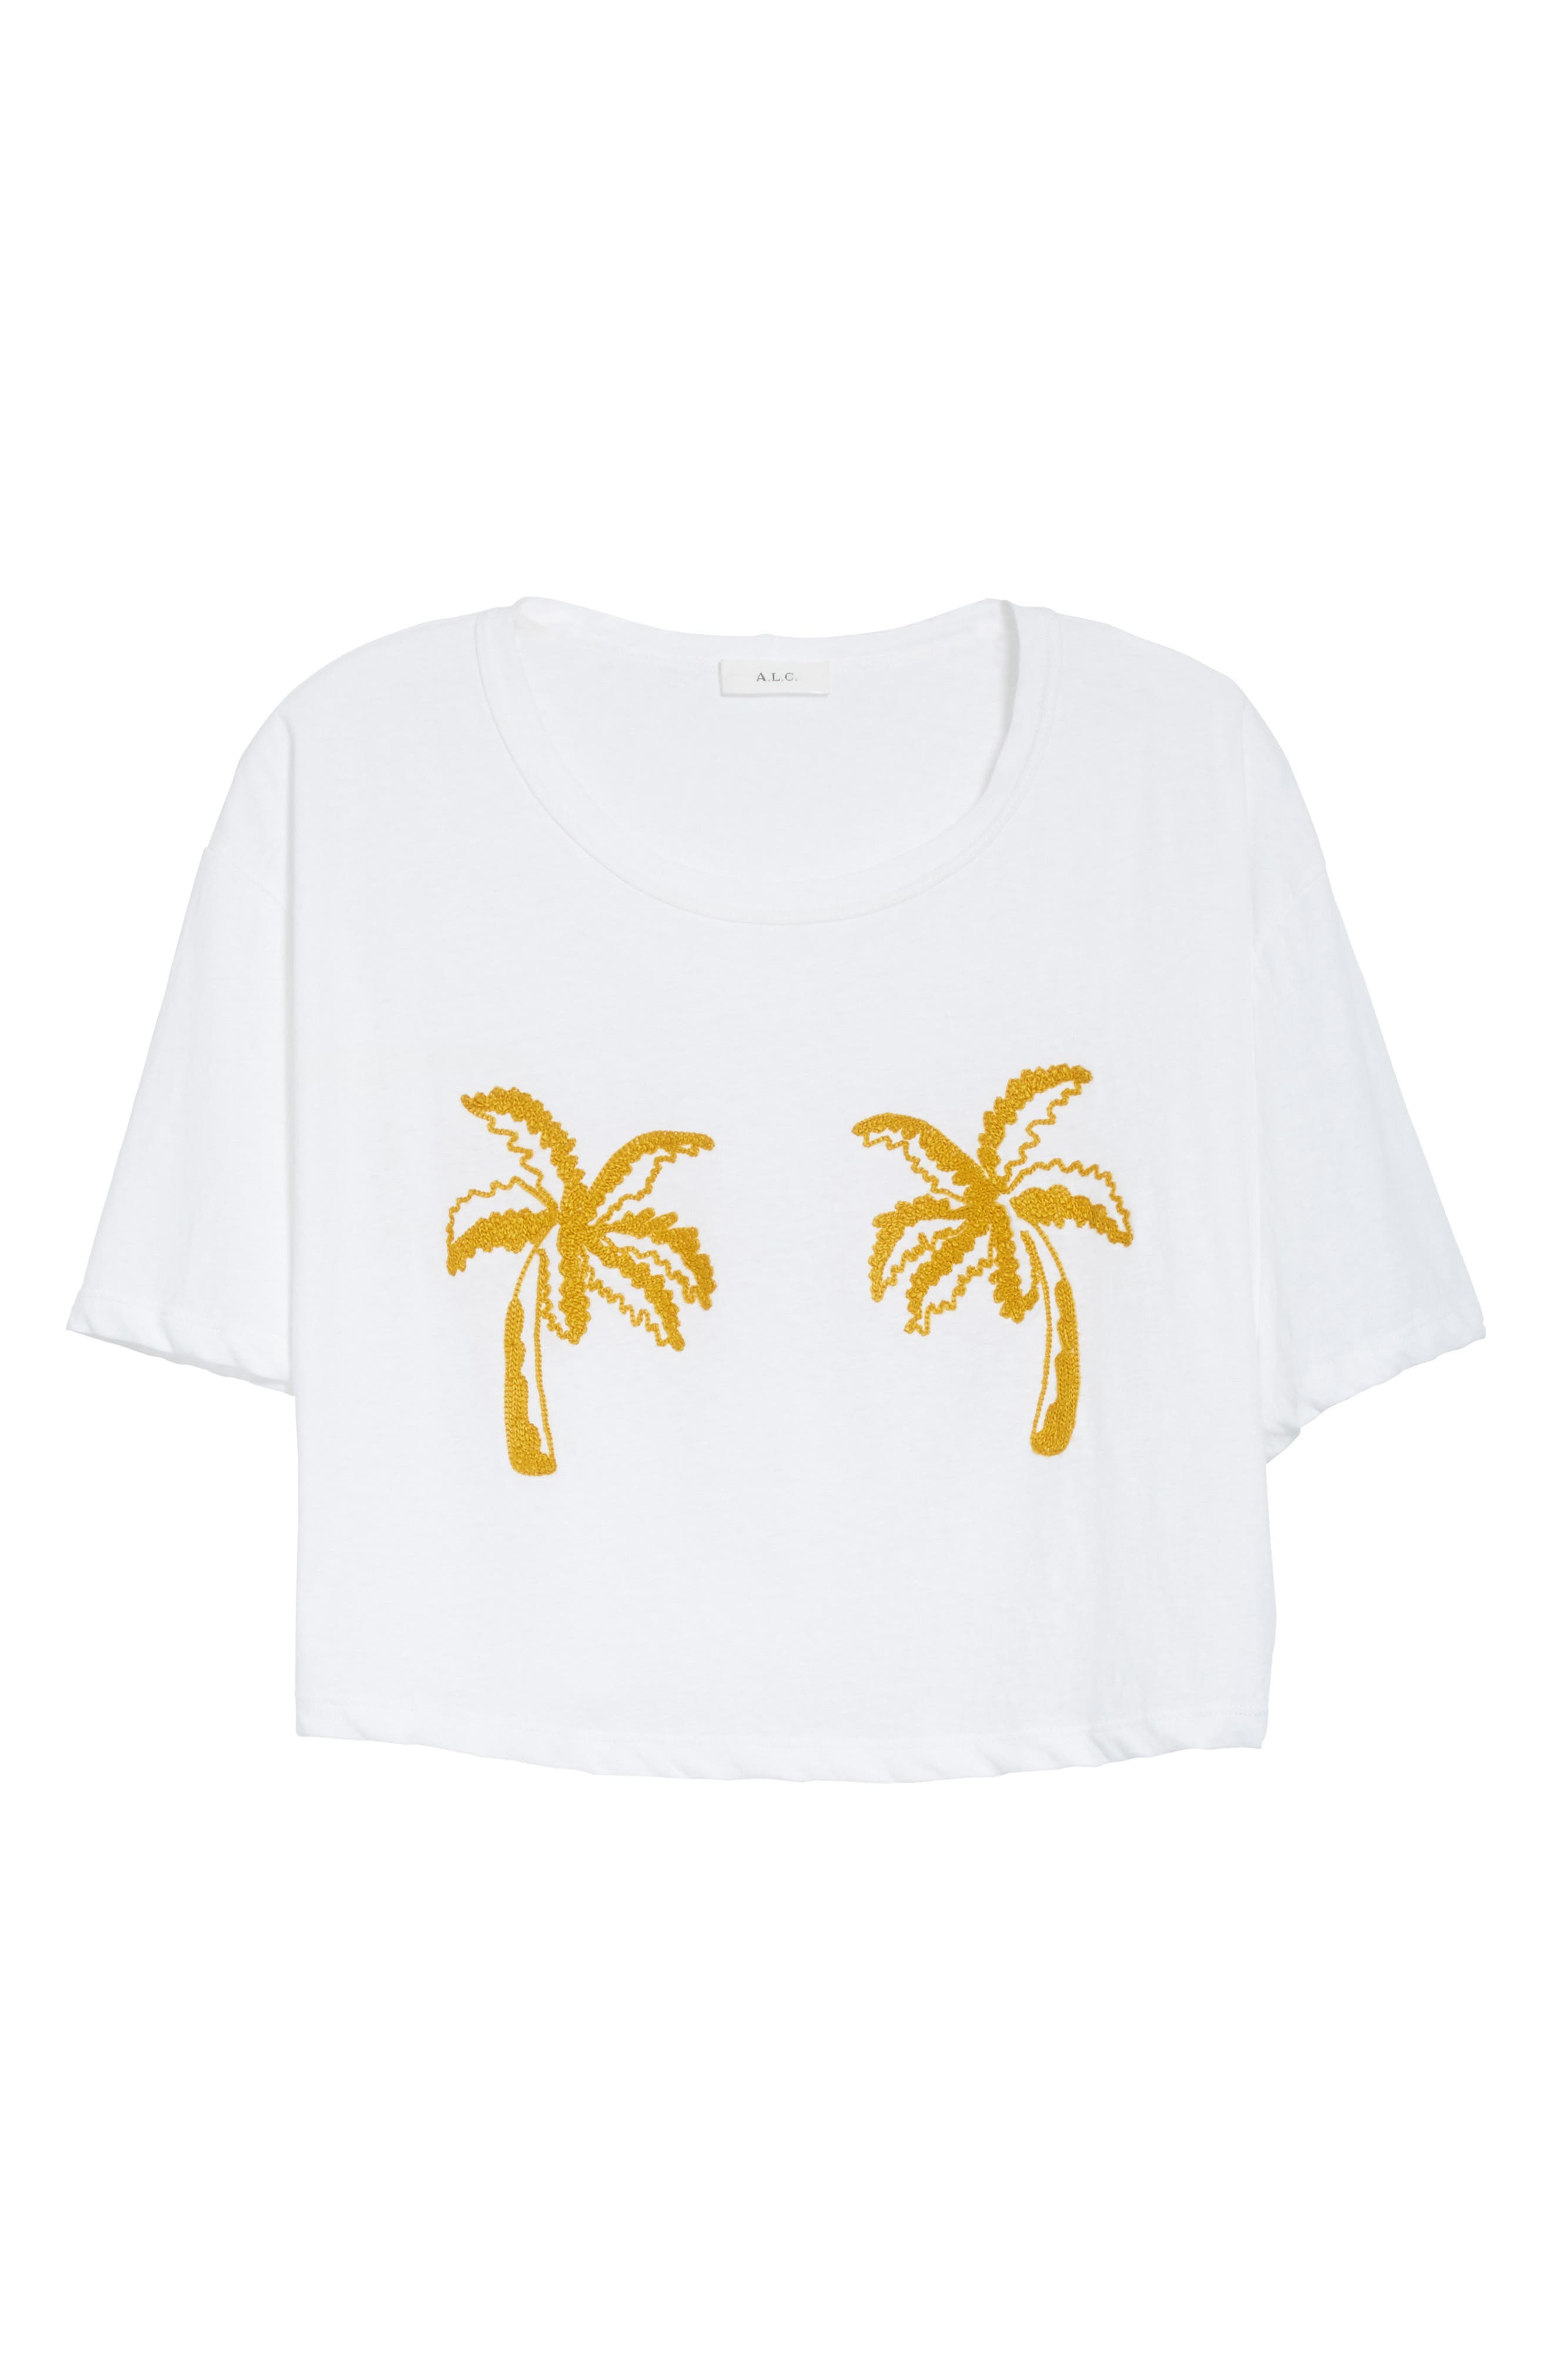 Teagan Palm Embroidered Crop Tee,                             Alternate thumbnail 6, color,                             White